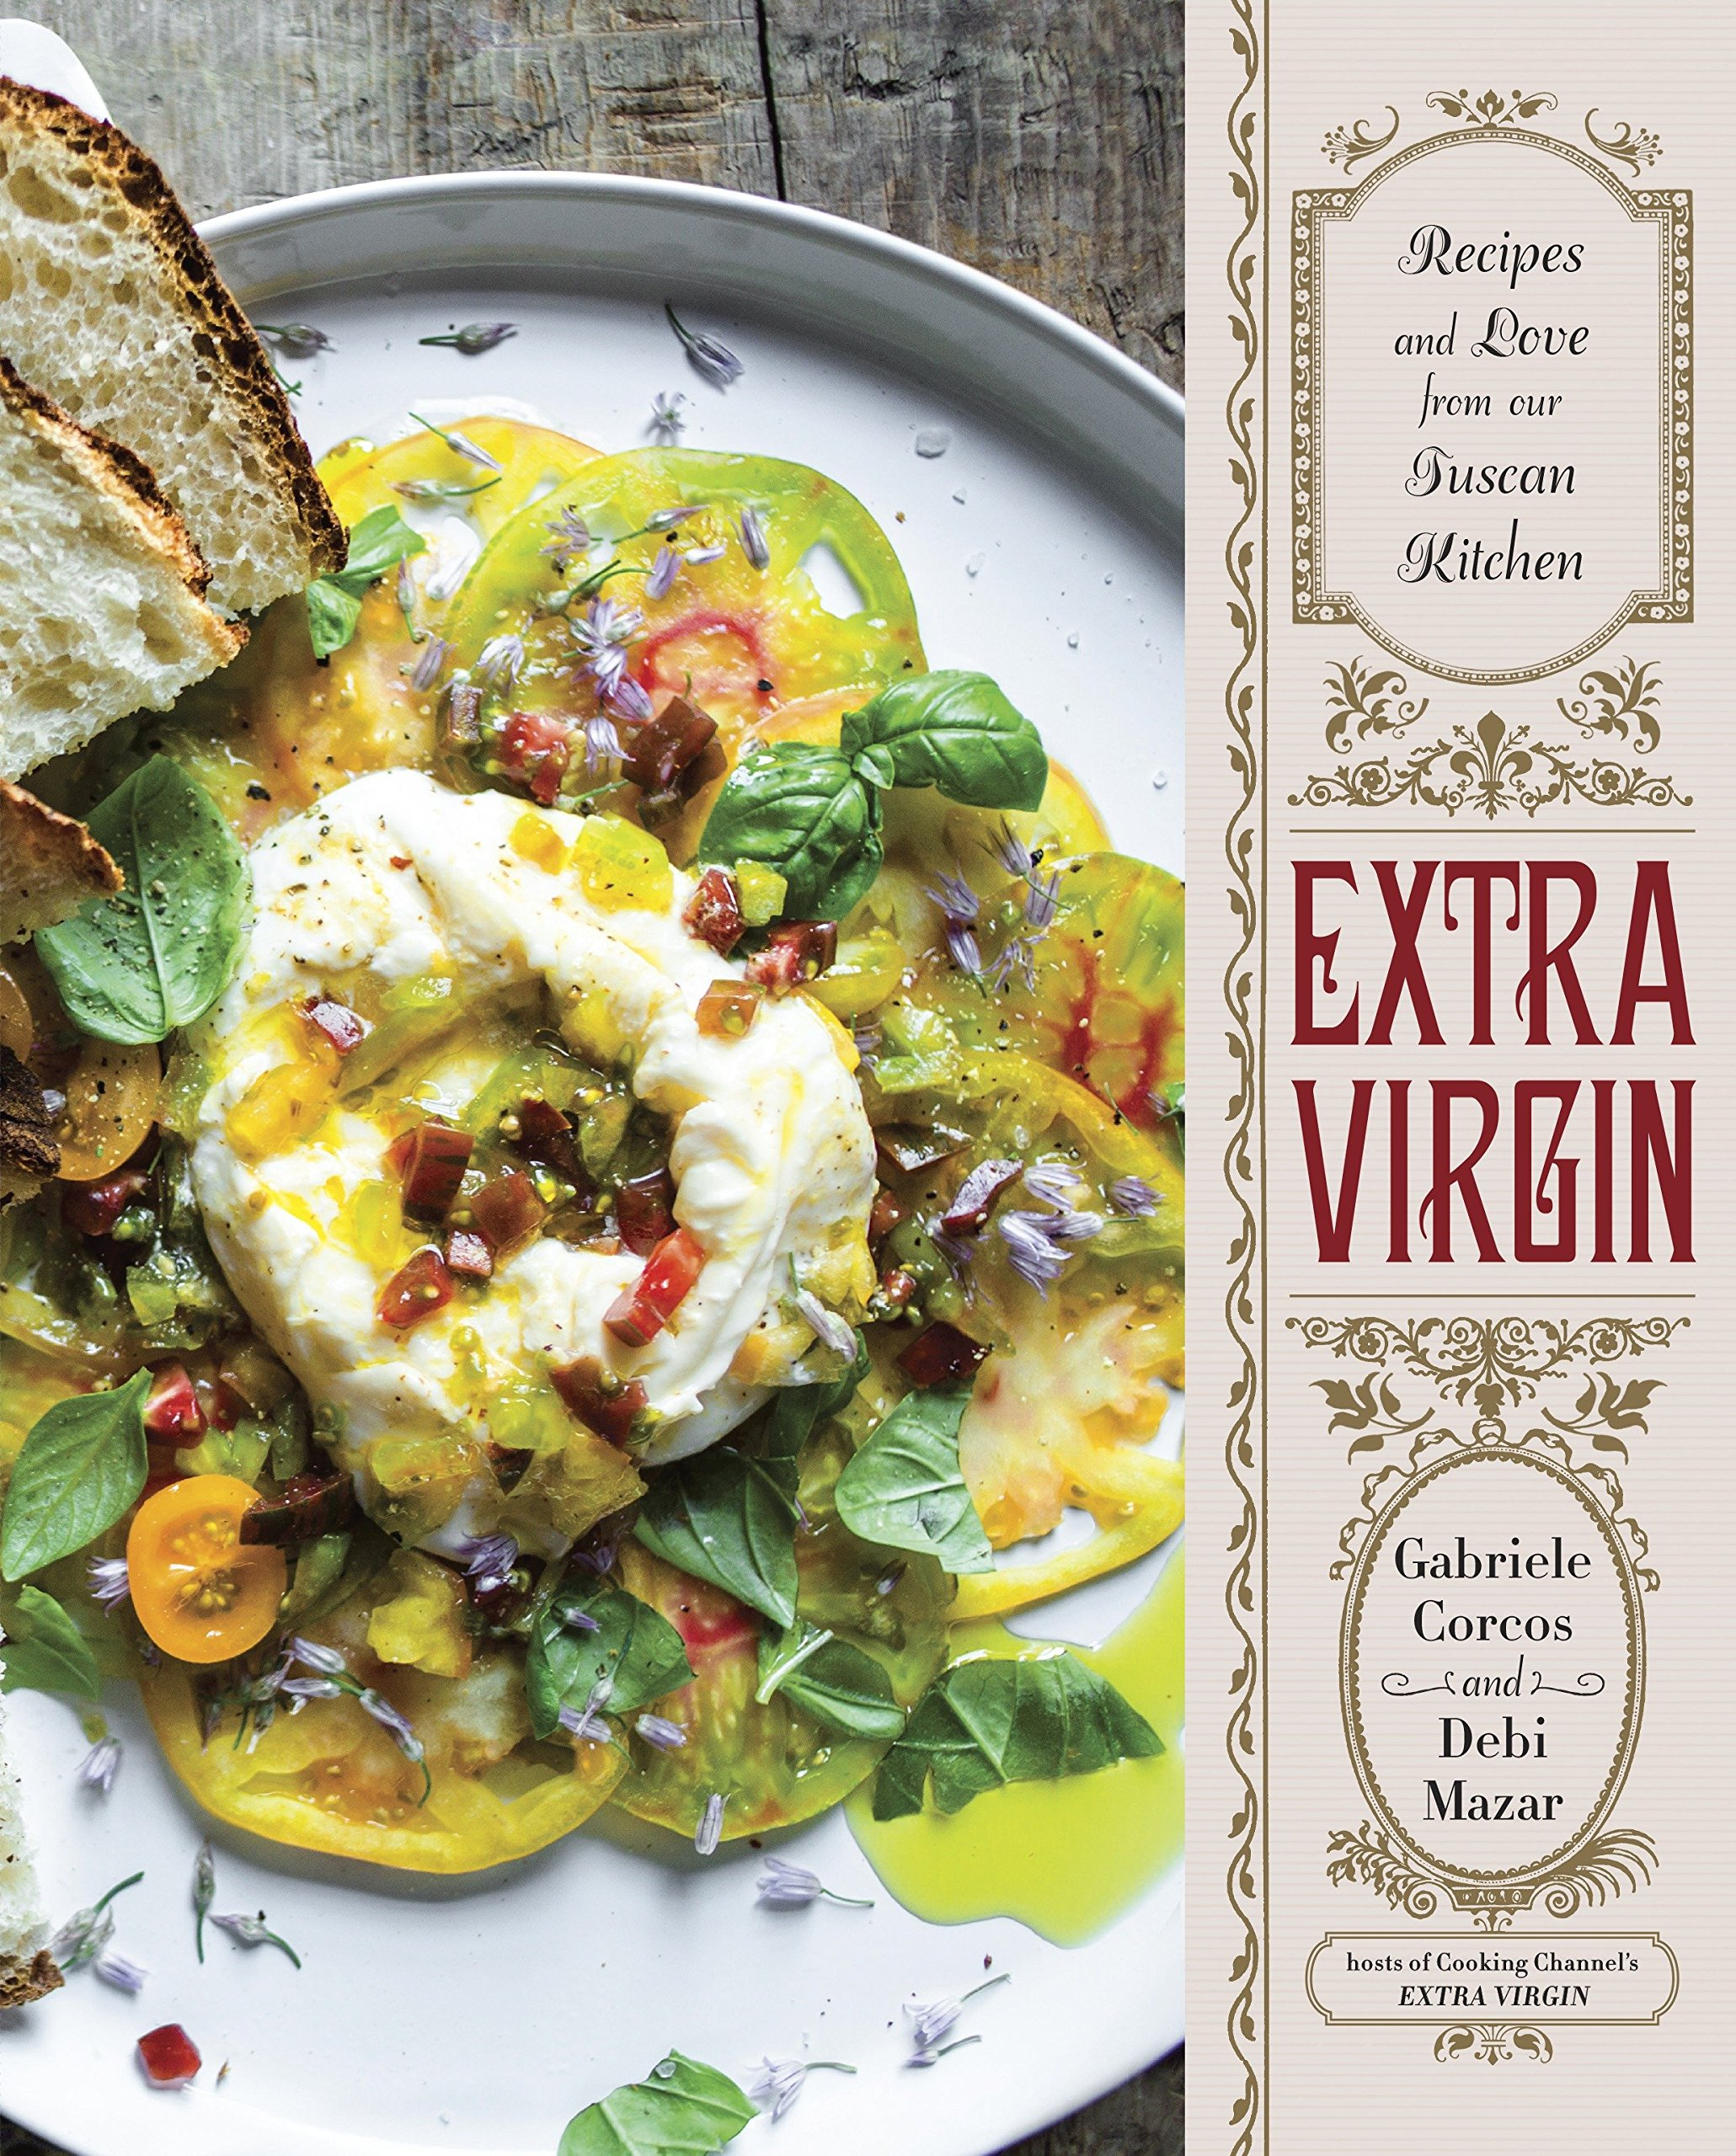 Extra virgin recipes love from our tuscan kitchen gabriele extra virgin recipes love from our tuscan kitchen gabriele corcos debi mazar 9780385346054 amazon books forumfinder Gallery